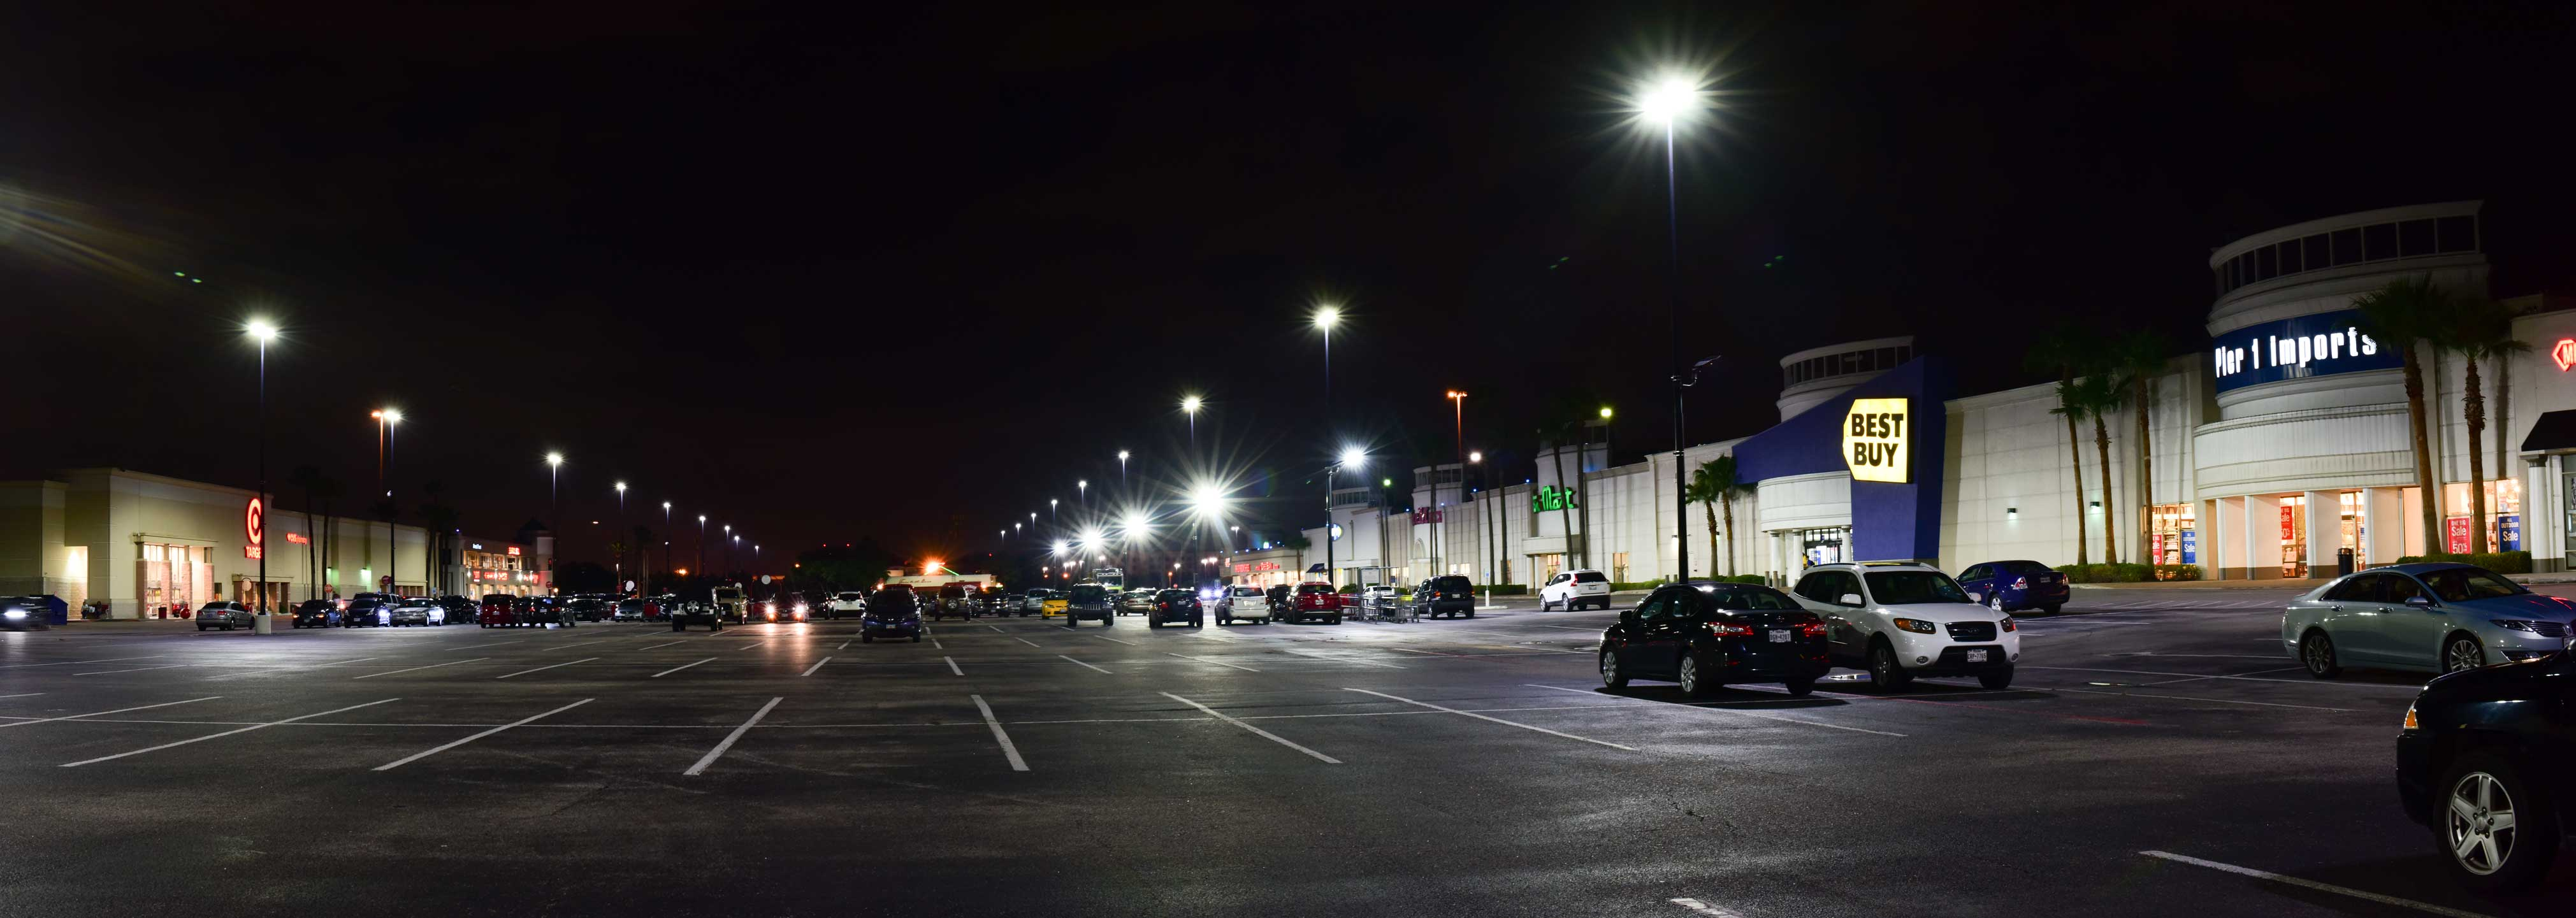 work at parking lights in img dark lot light new facilities tags lighting after iittoday news street the led